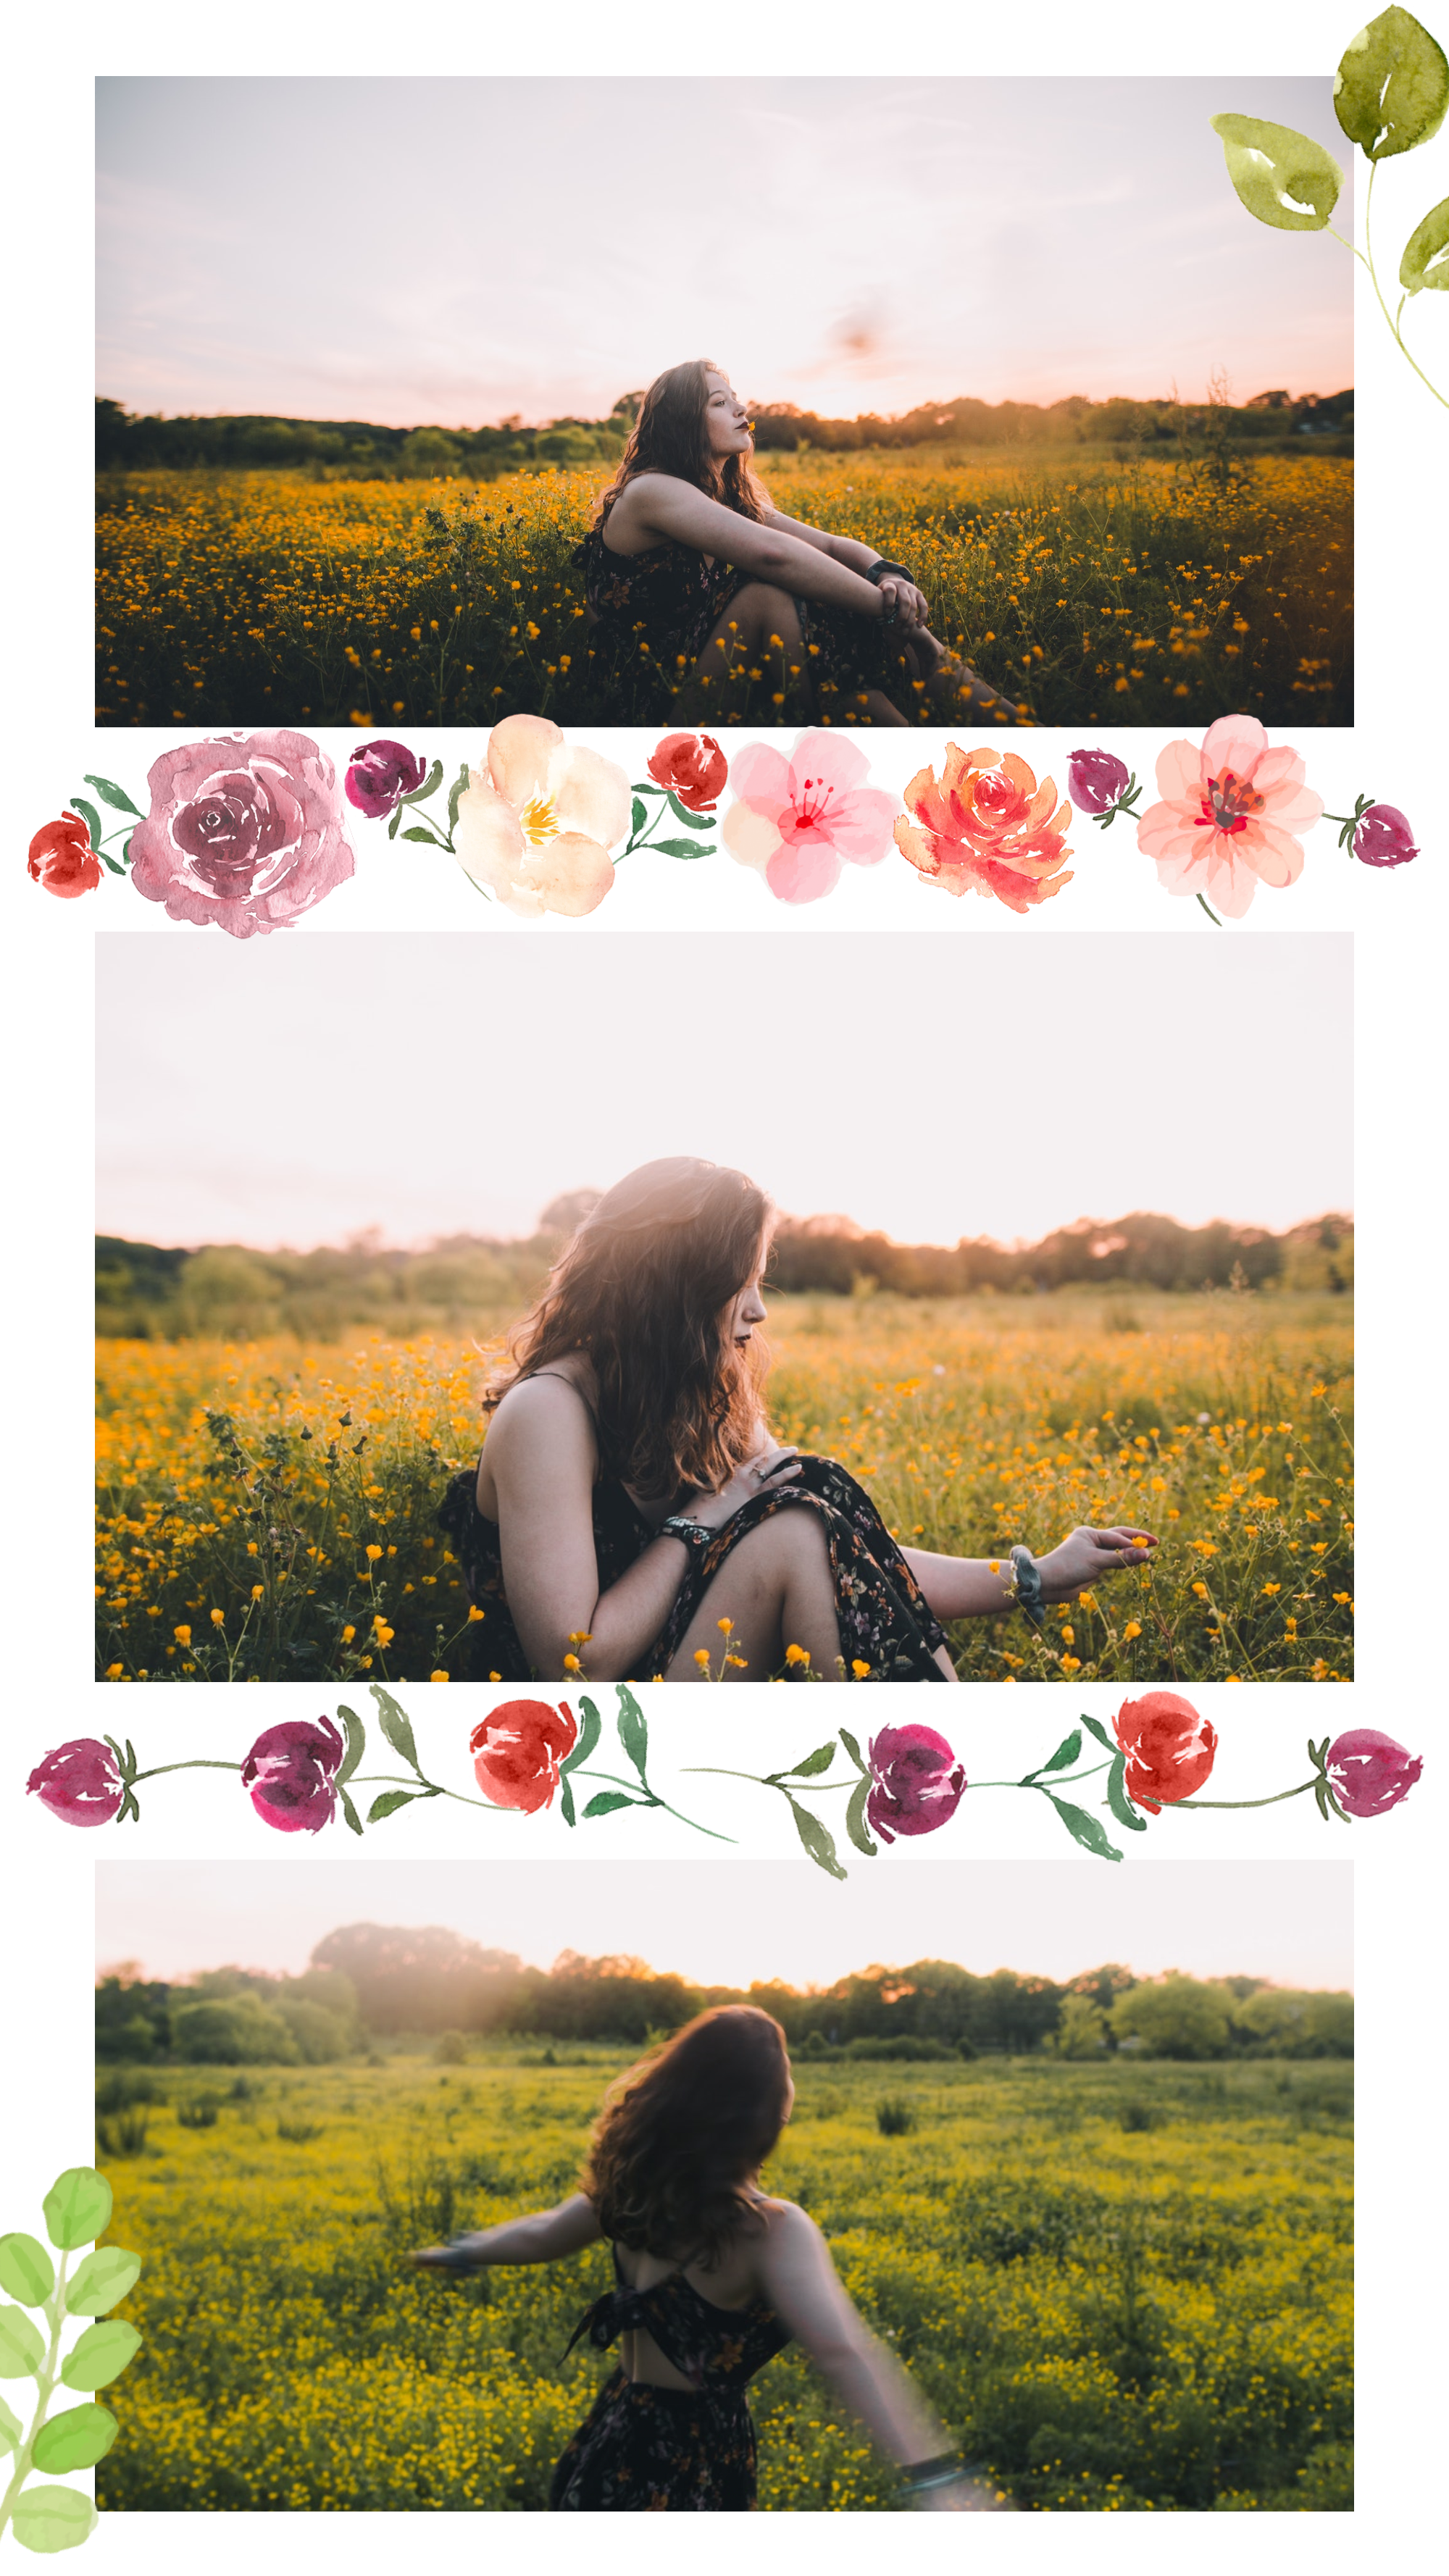 #pastelflowers collection - PostMuse Instagram Story Template